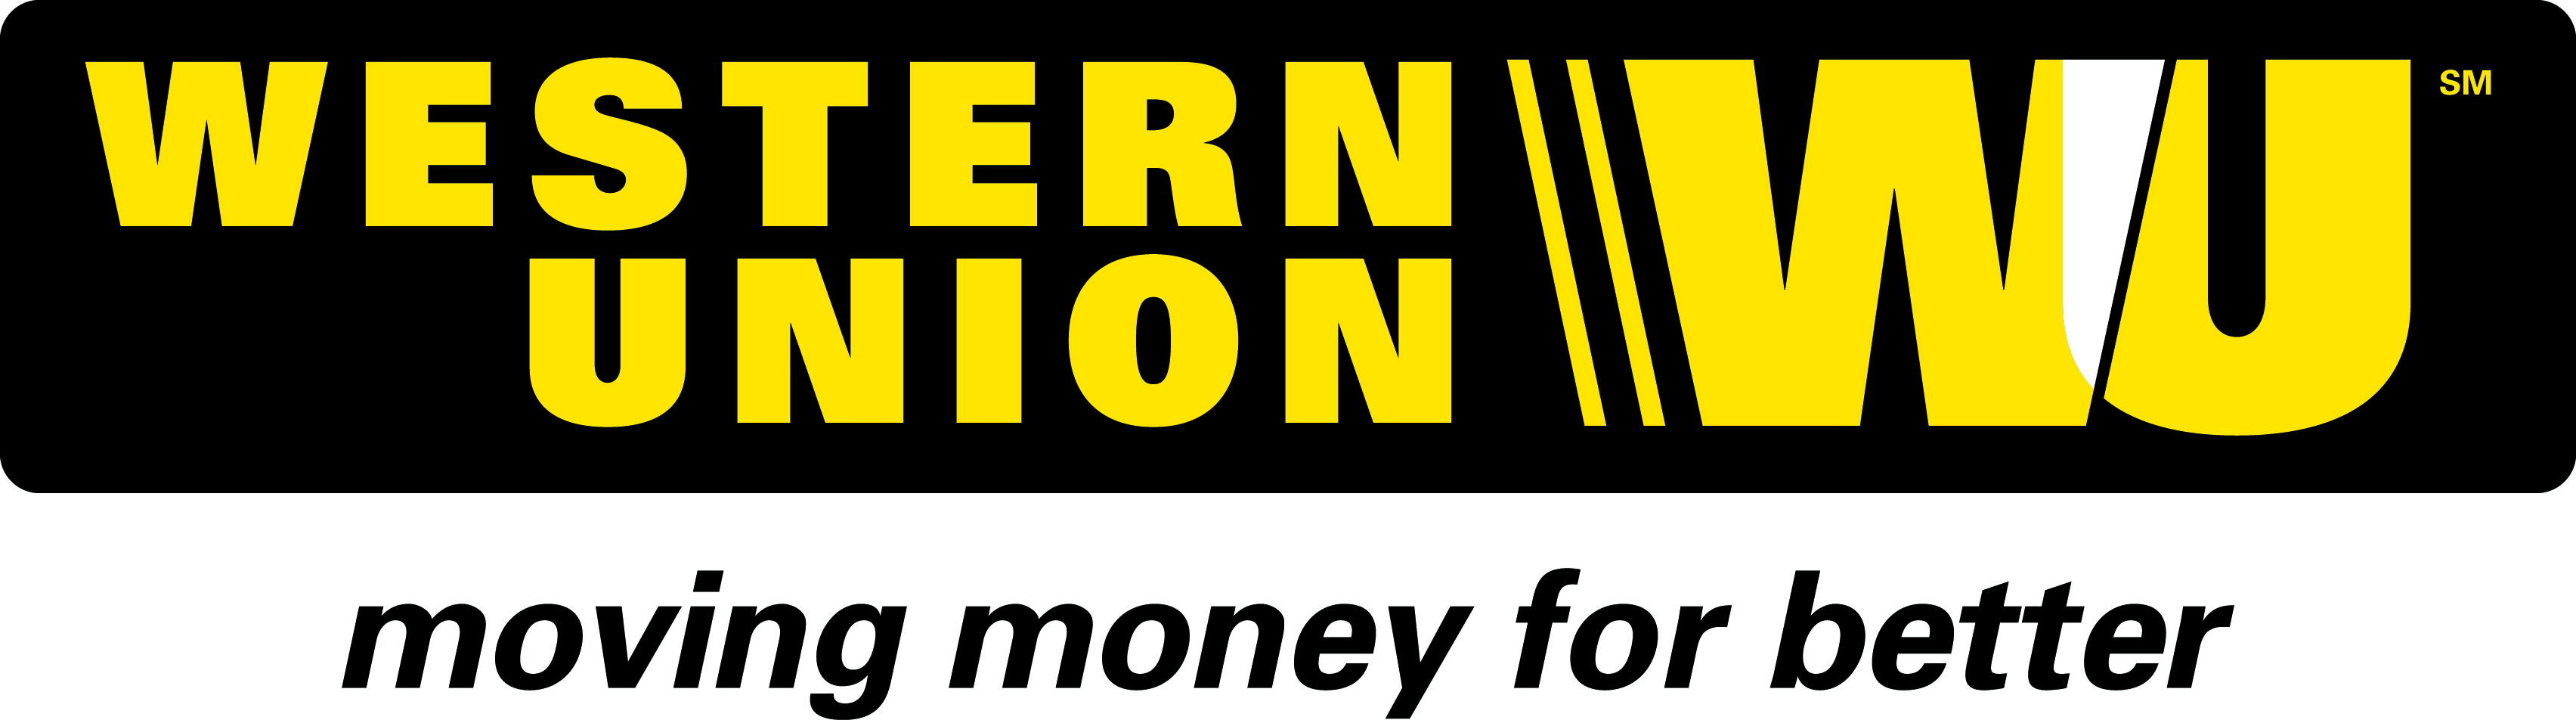 8 Western Union New Logo PSD Images